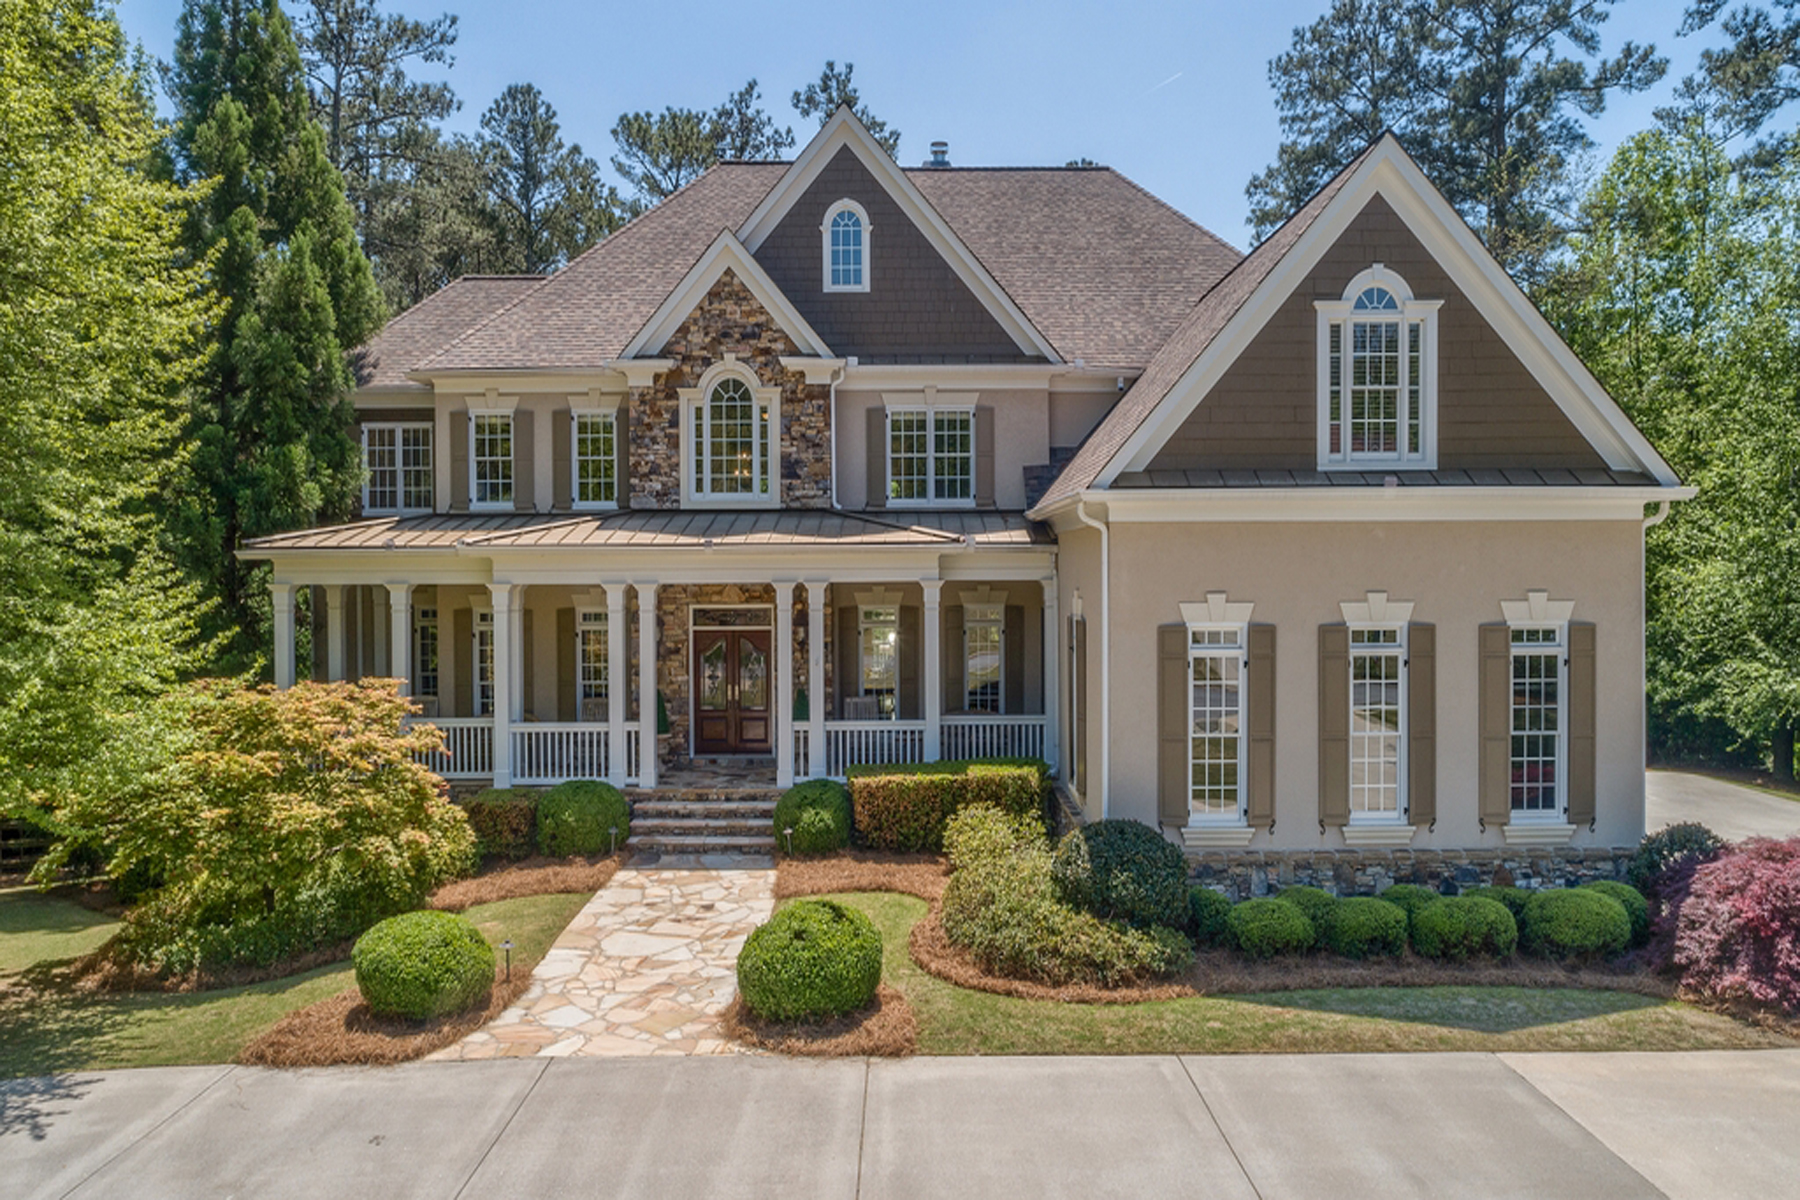 Single Family Home for Sale at Charming Southern Estate with Great Attention to Detail 610 Glen National Dr Alpharetta, Georgia 30004 United States